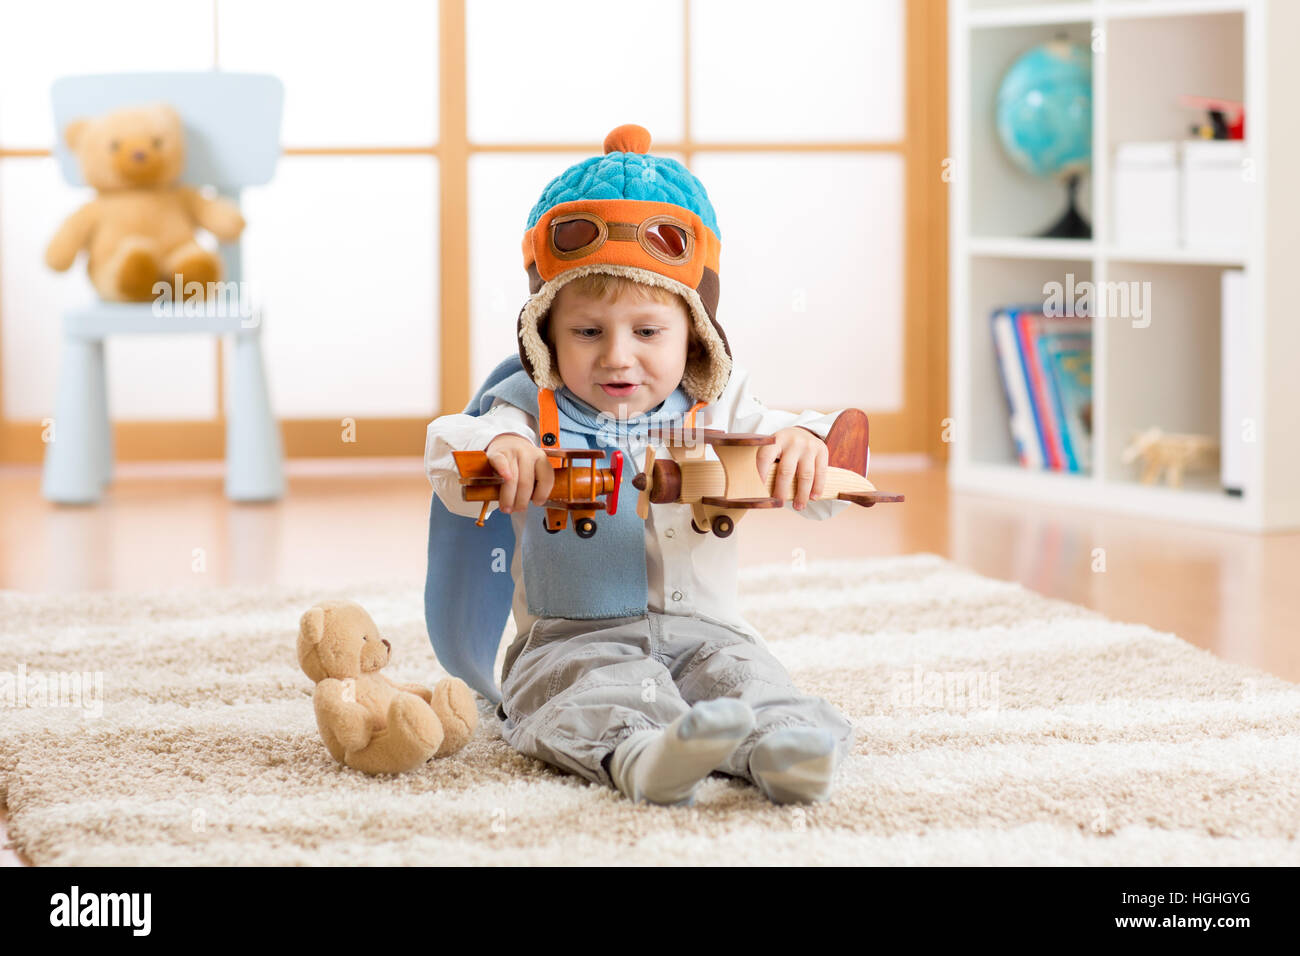 Happy kid boy playing with toy airplane at home in his room - Stock Image